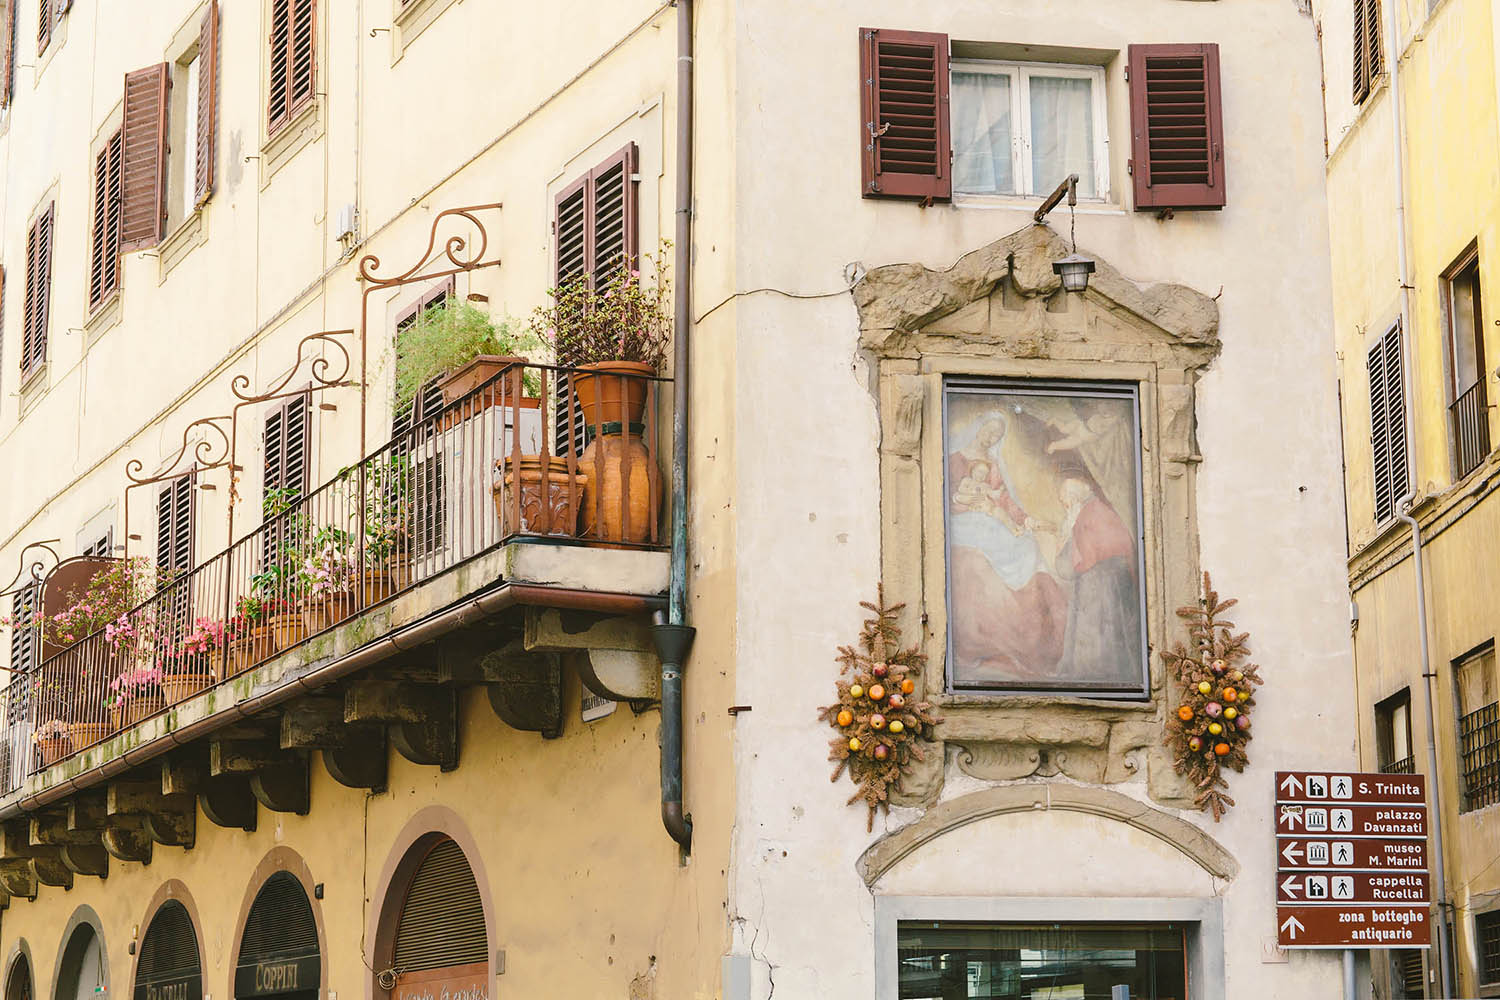 building facade in italy